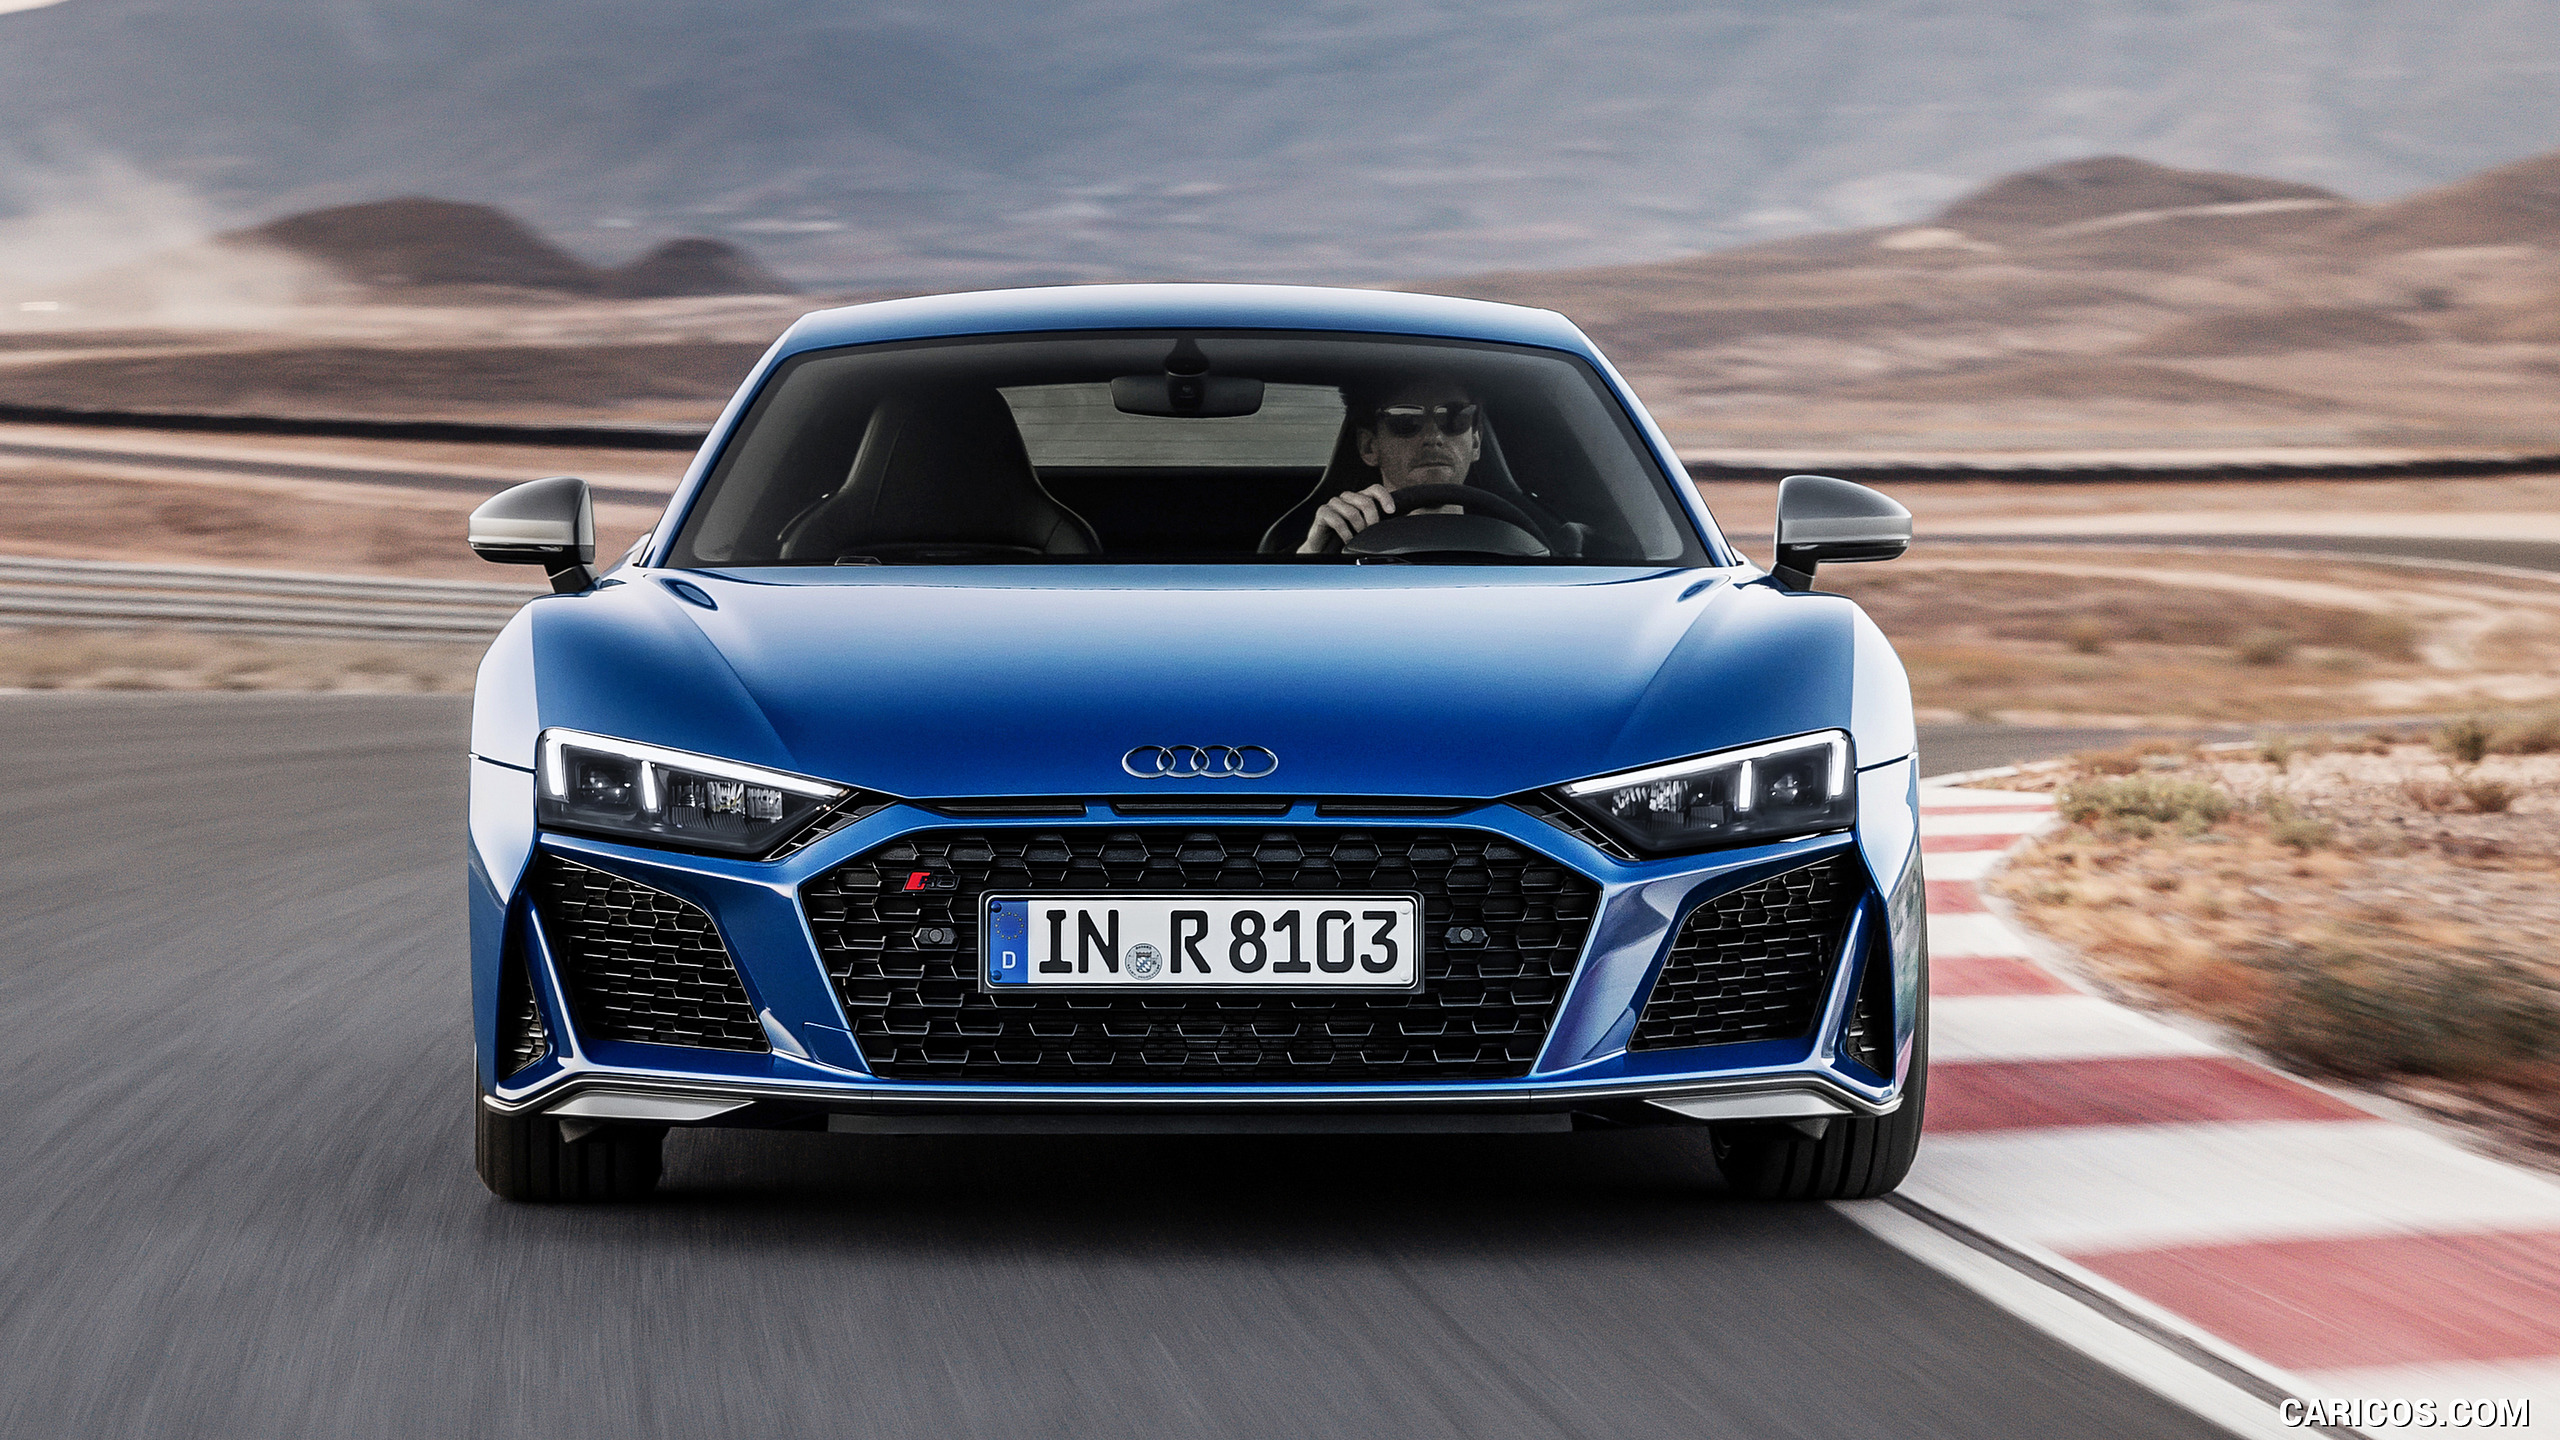 2019 Audi R8 Coupe Color Ascari Blue Metallic   Front HD 2560x1440